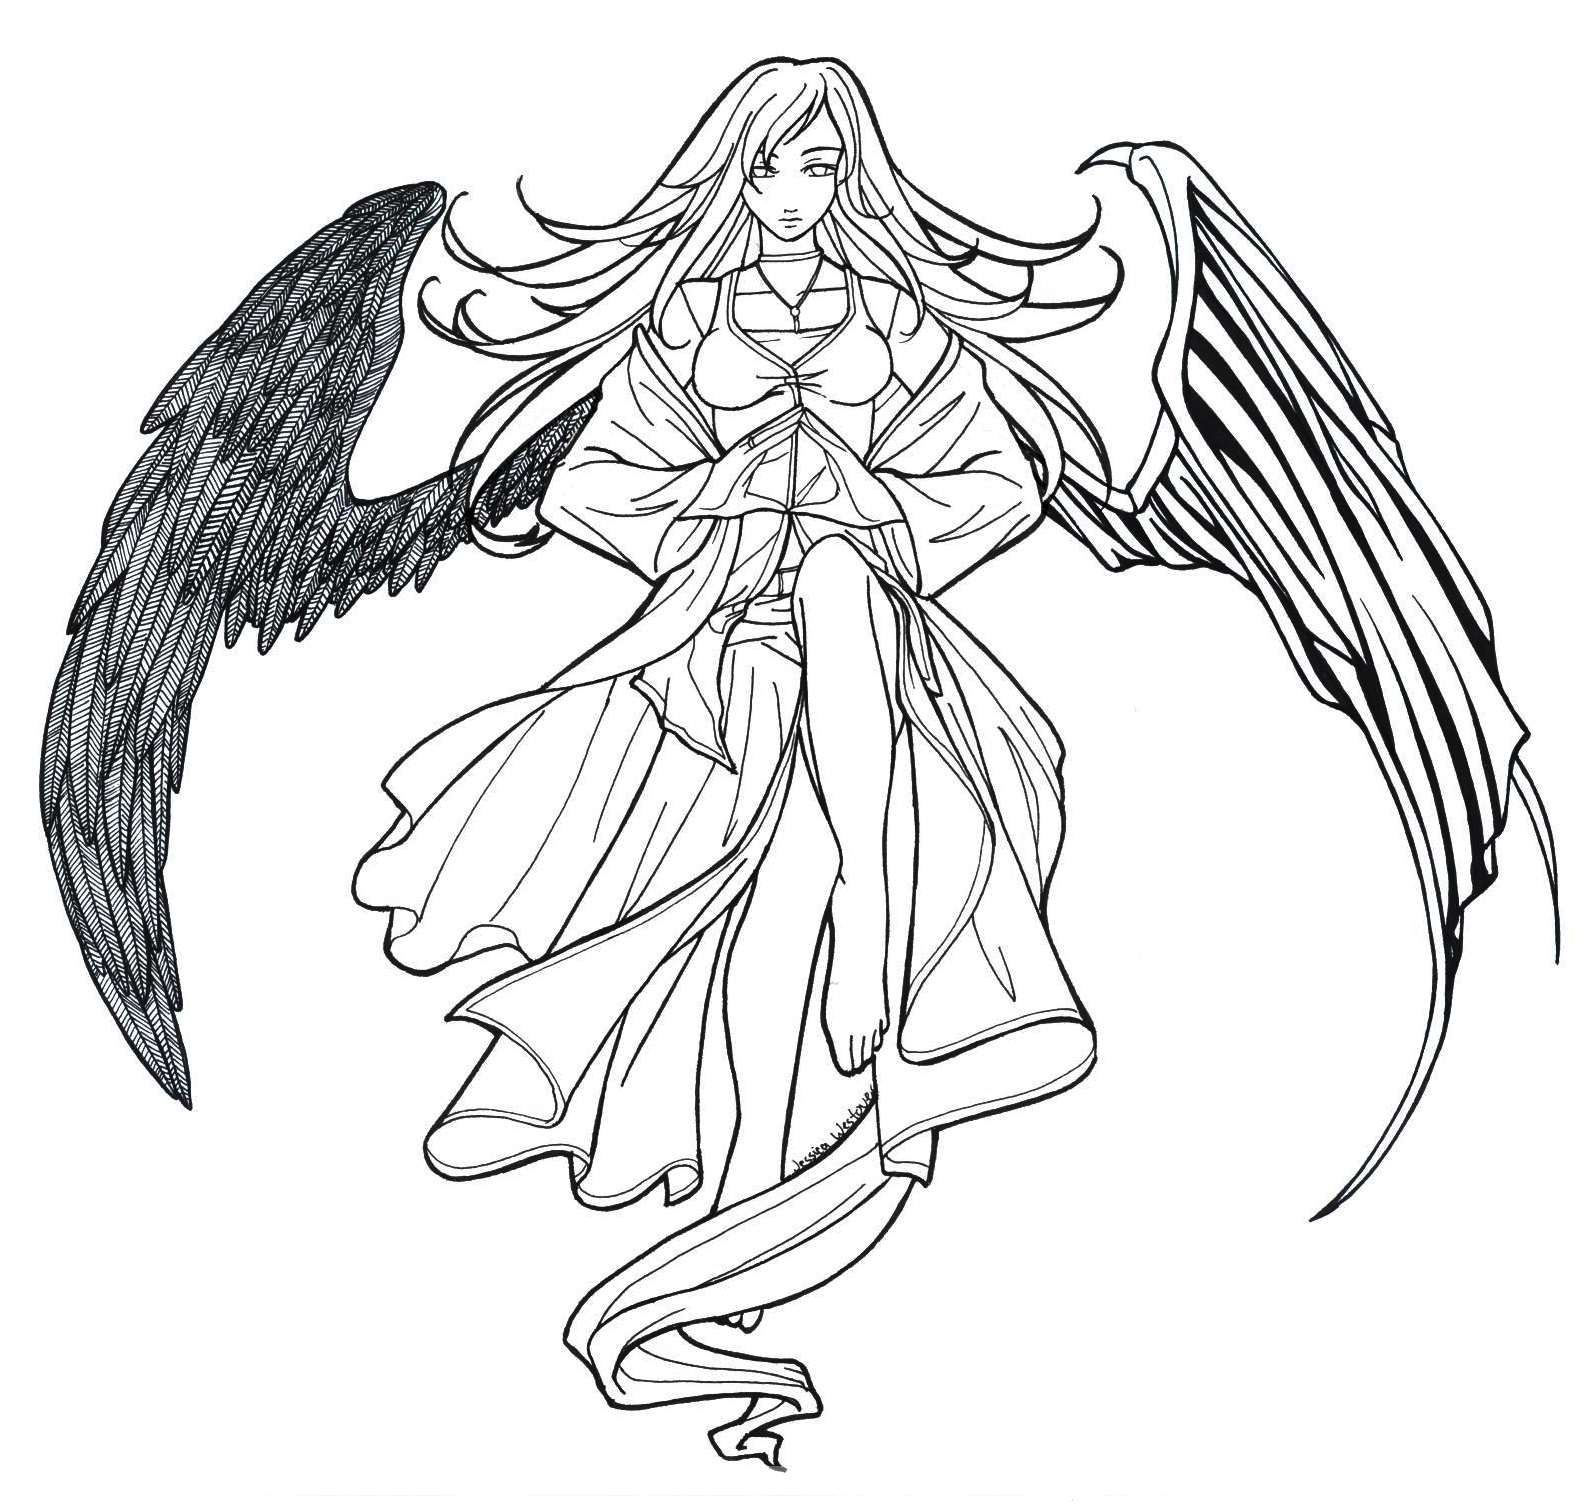 Angel Anime Drawing at GetDrawings.com | Free for personal use Angel ...